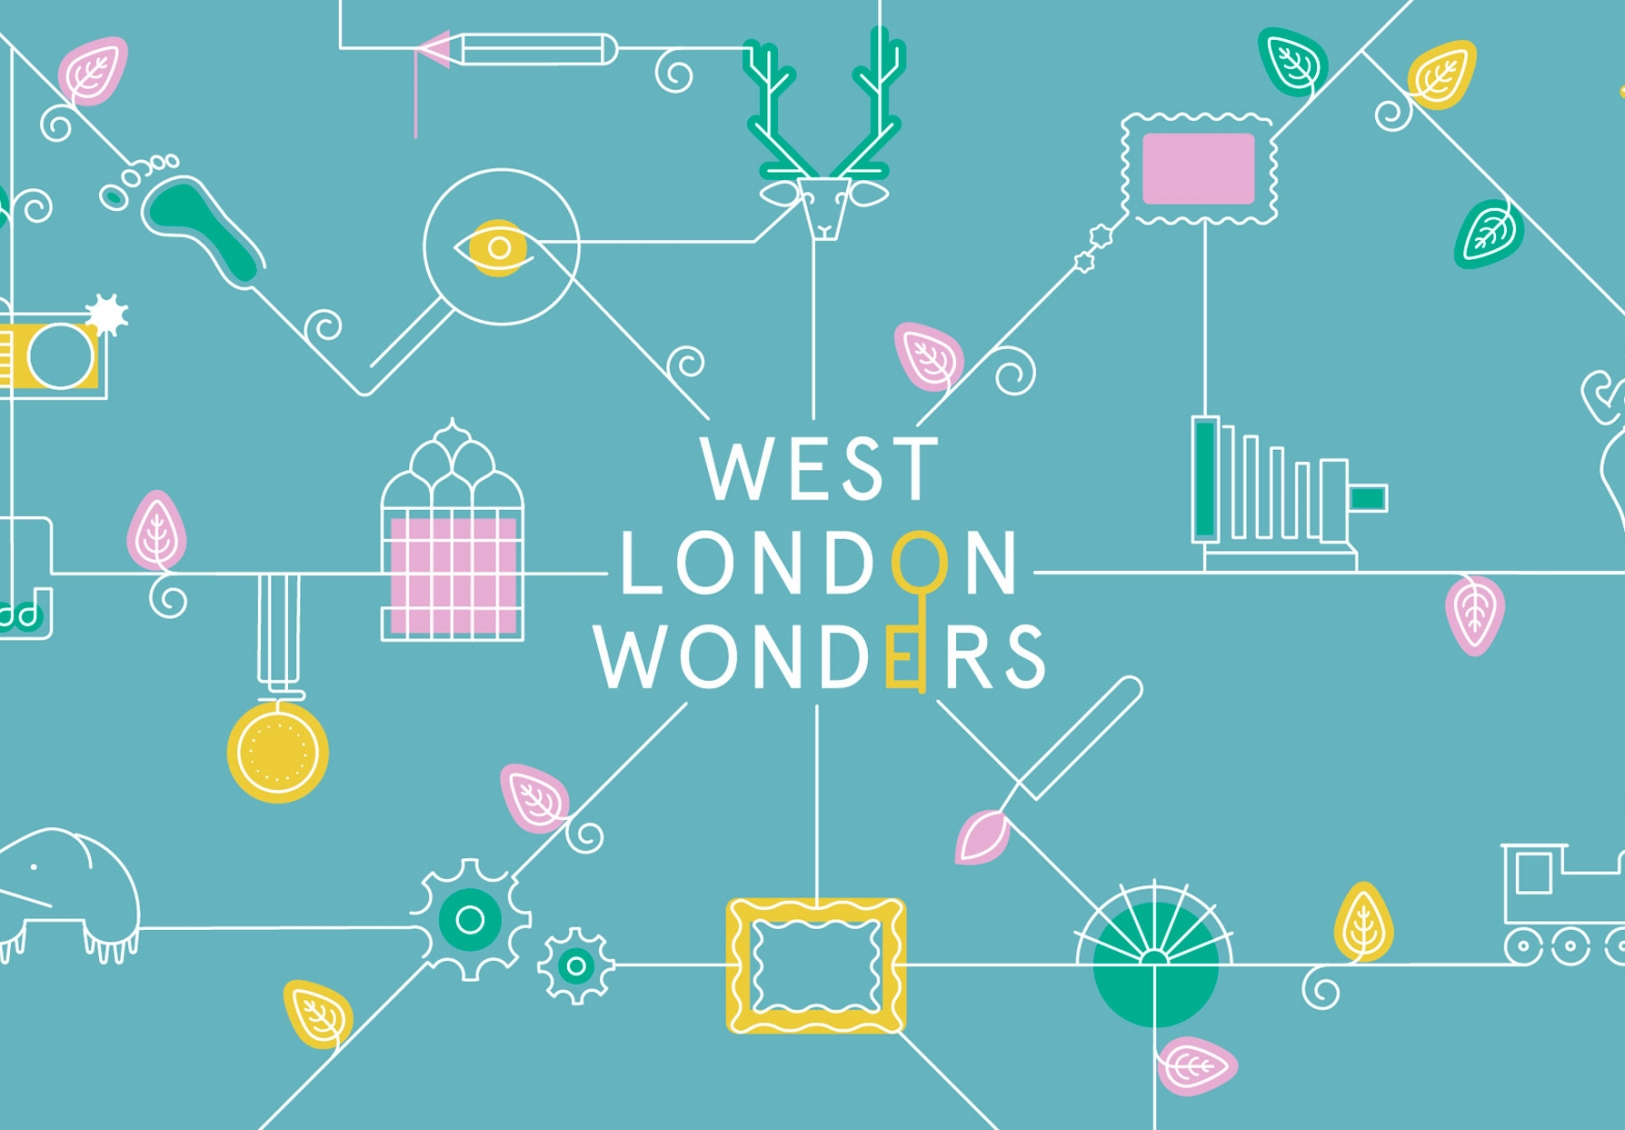 Brand identity and illustration for West London Wonders by Altogether Creative.